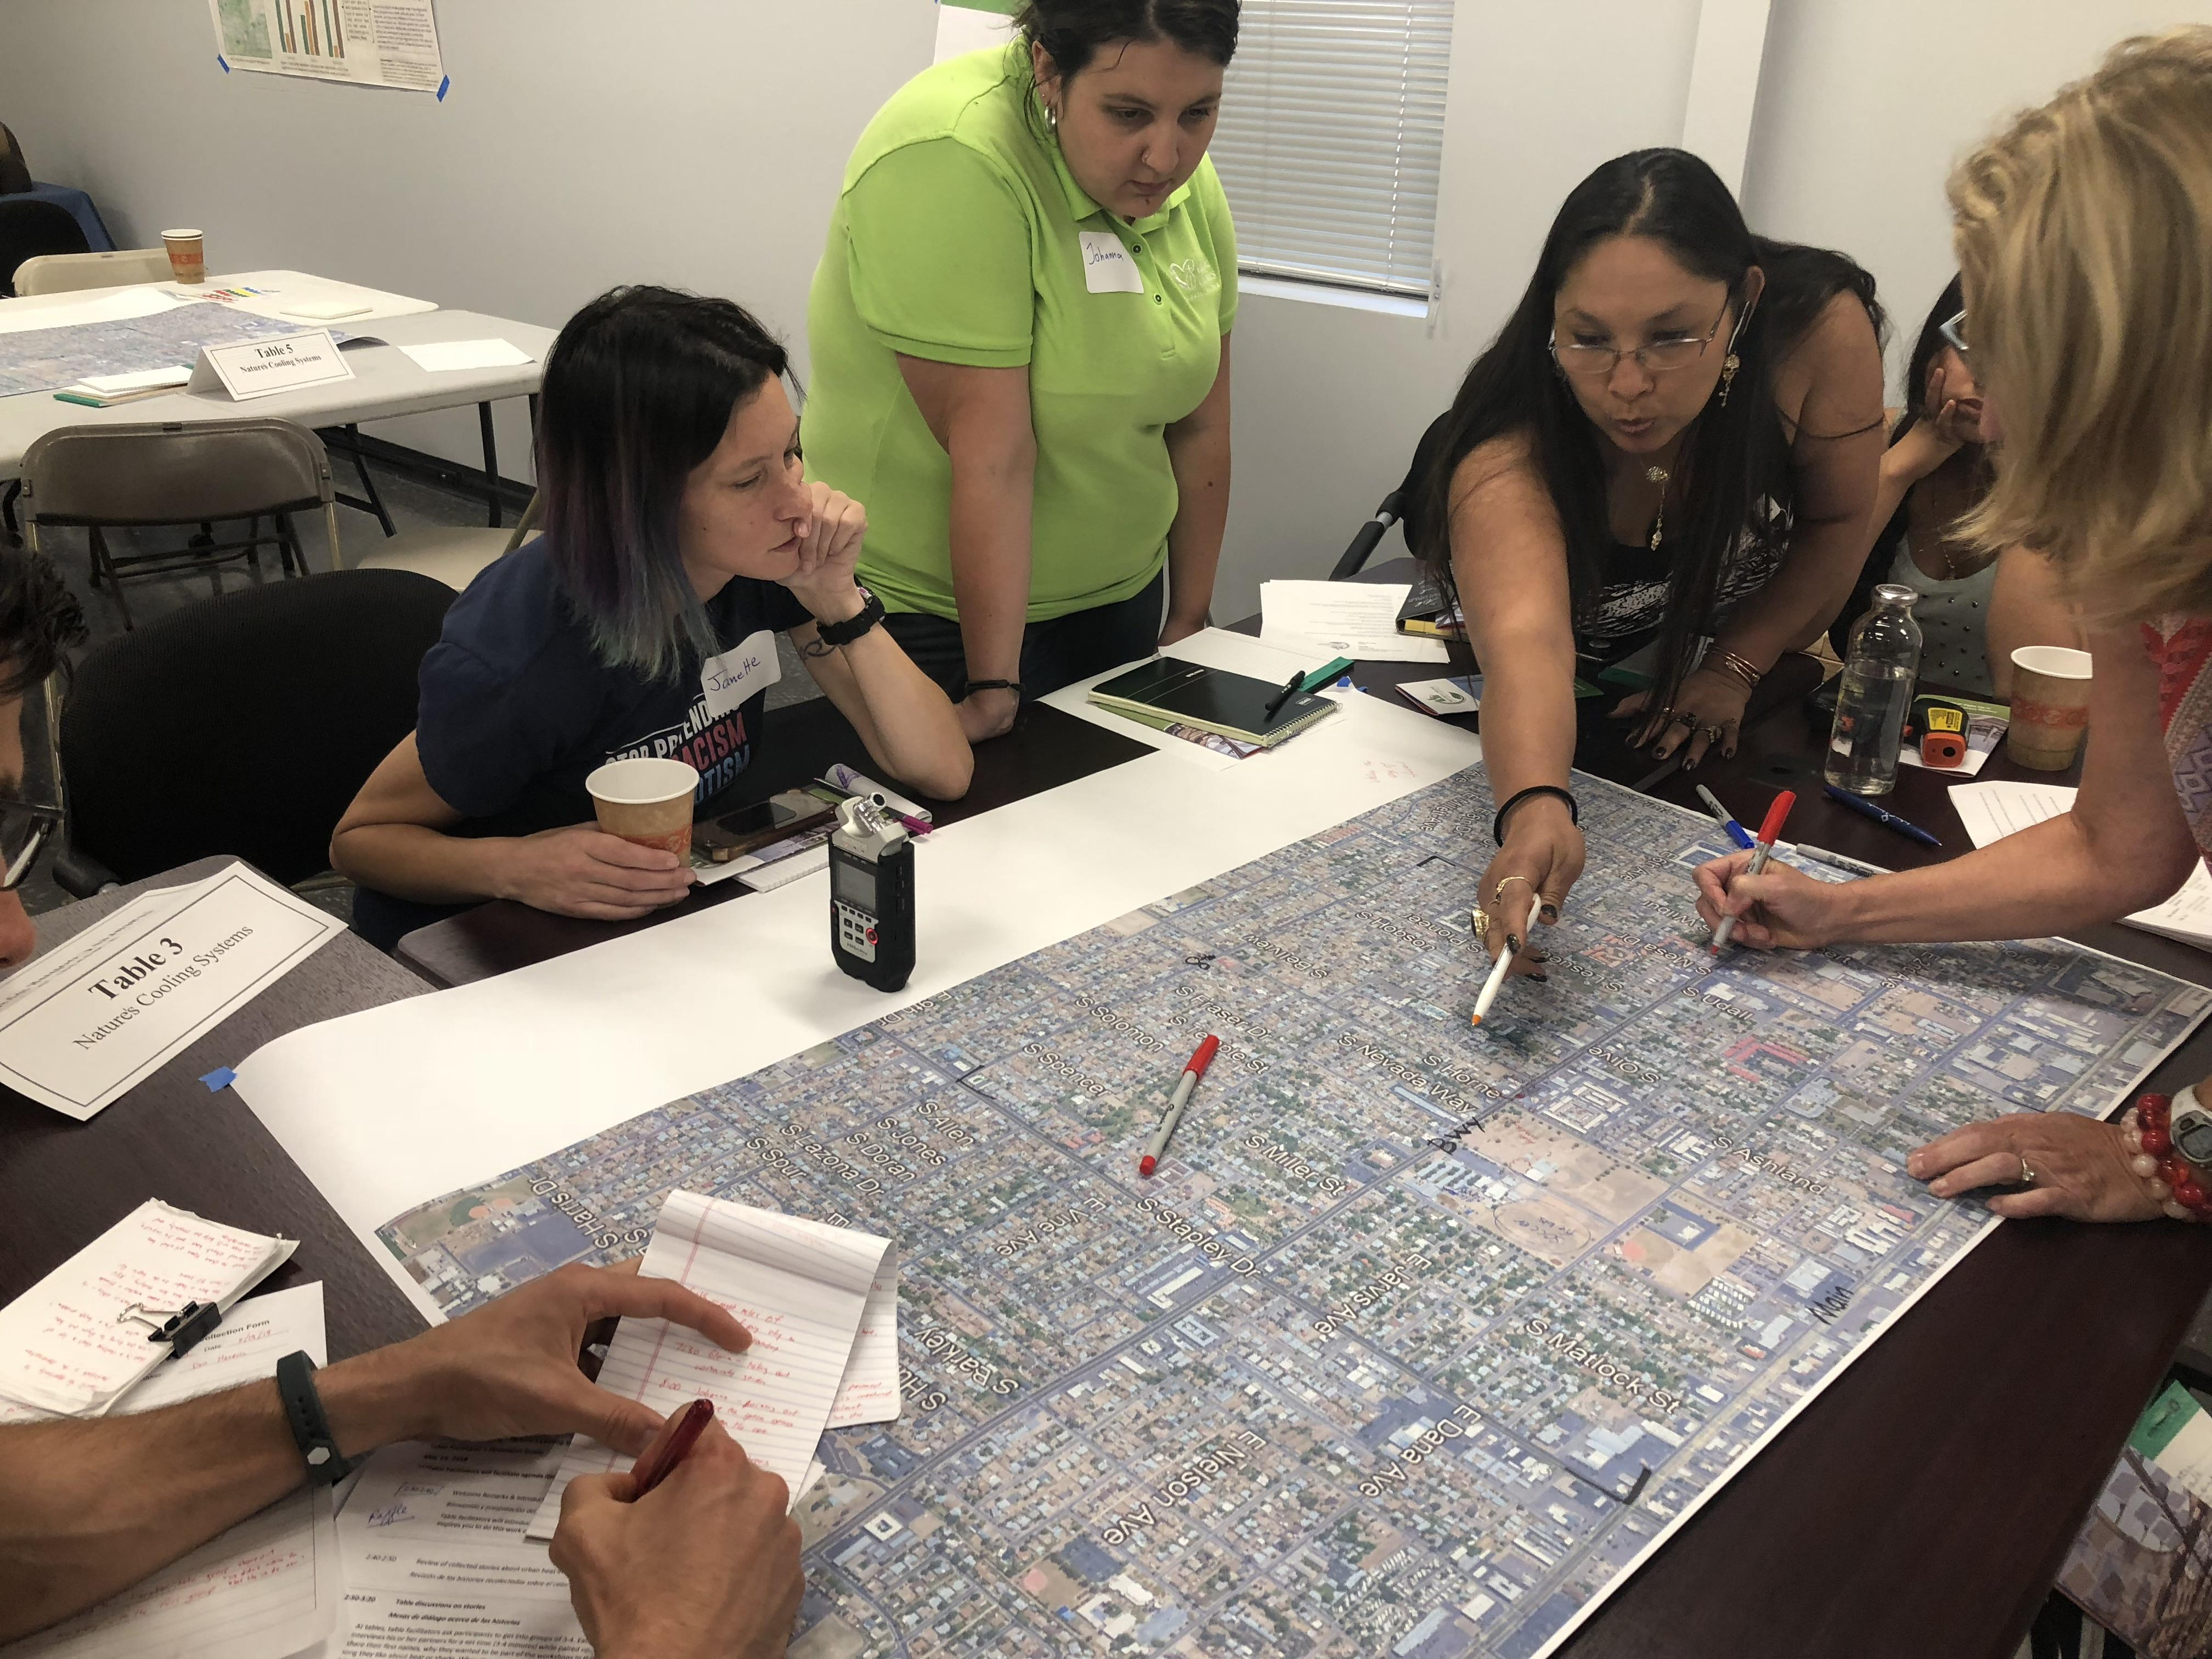 residents map out the heat footprint